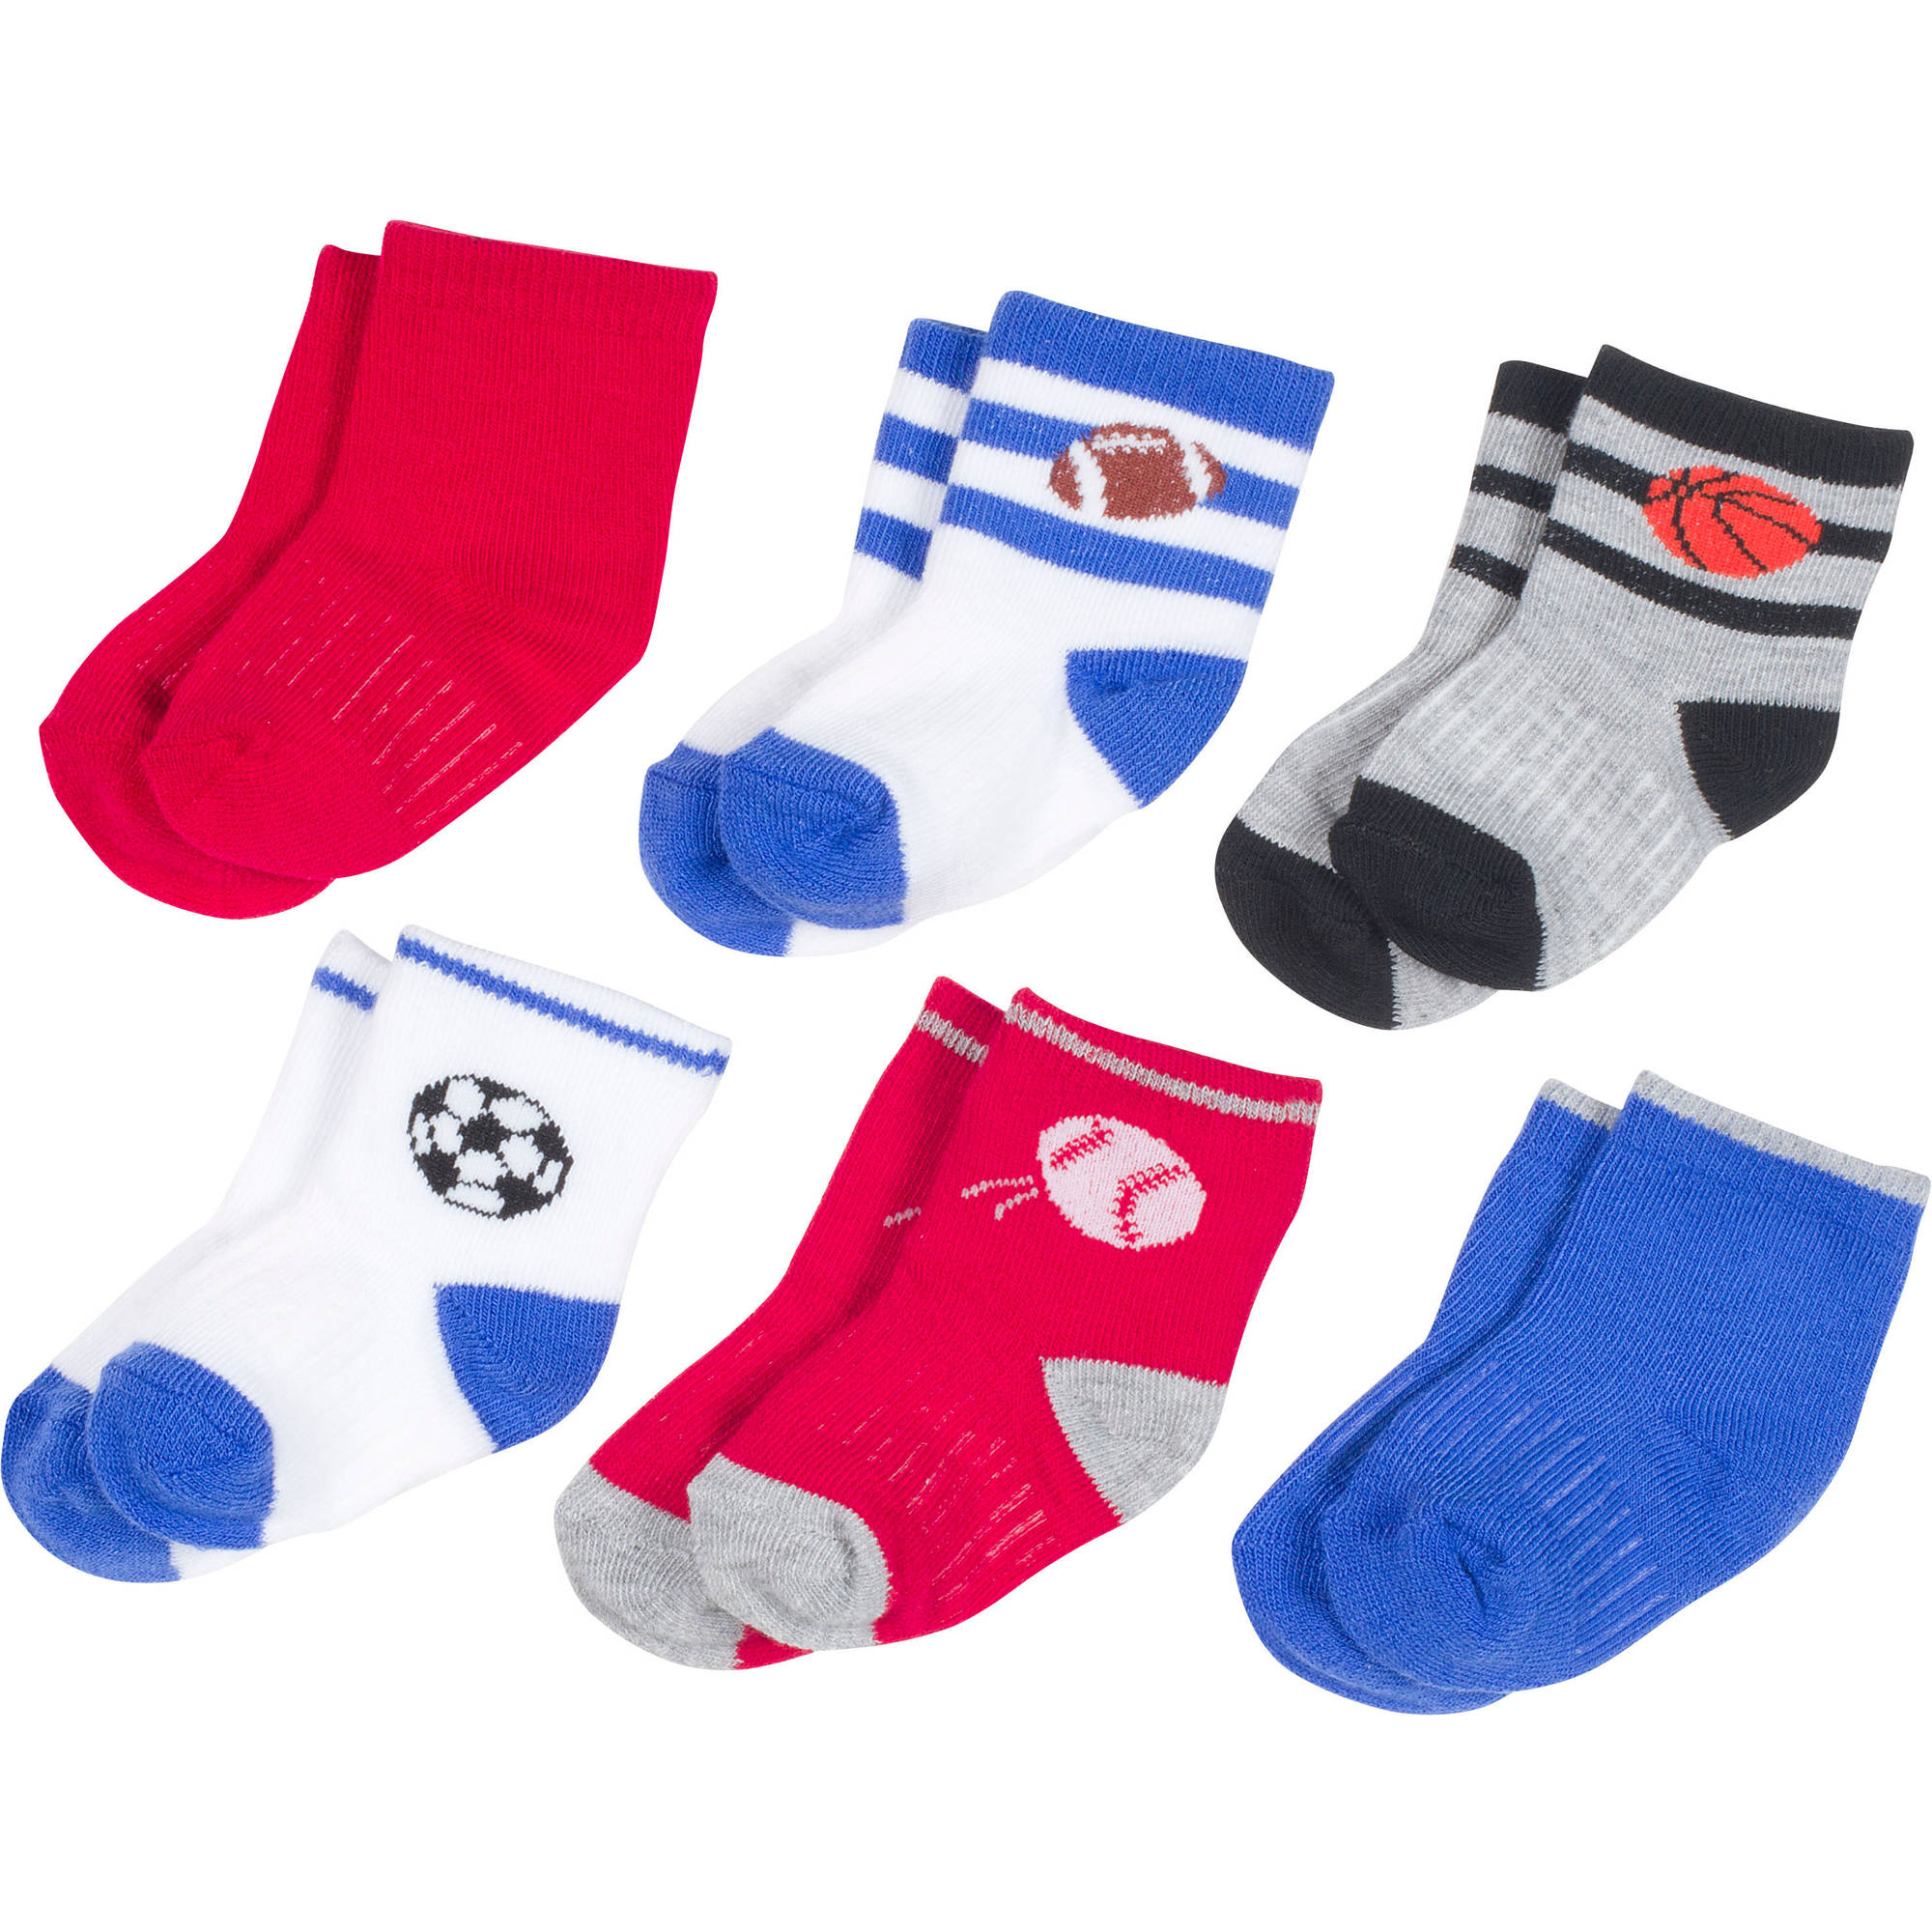 Growing Socks by Peds, Boy Infant, Sports Balls, 6 Pairs